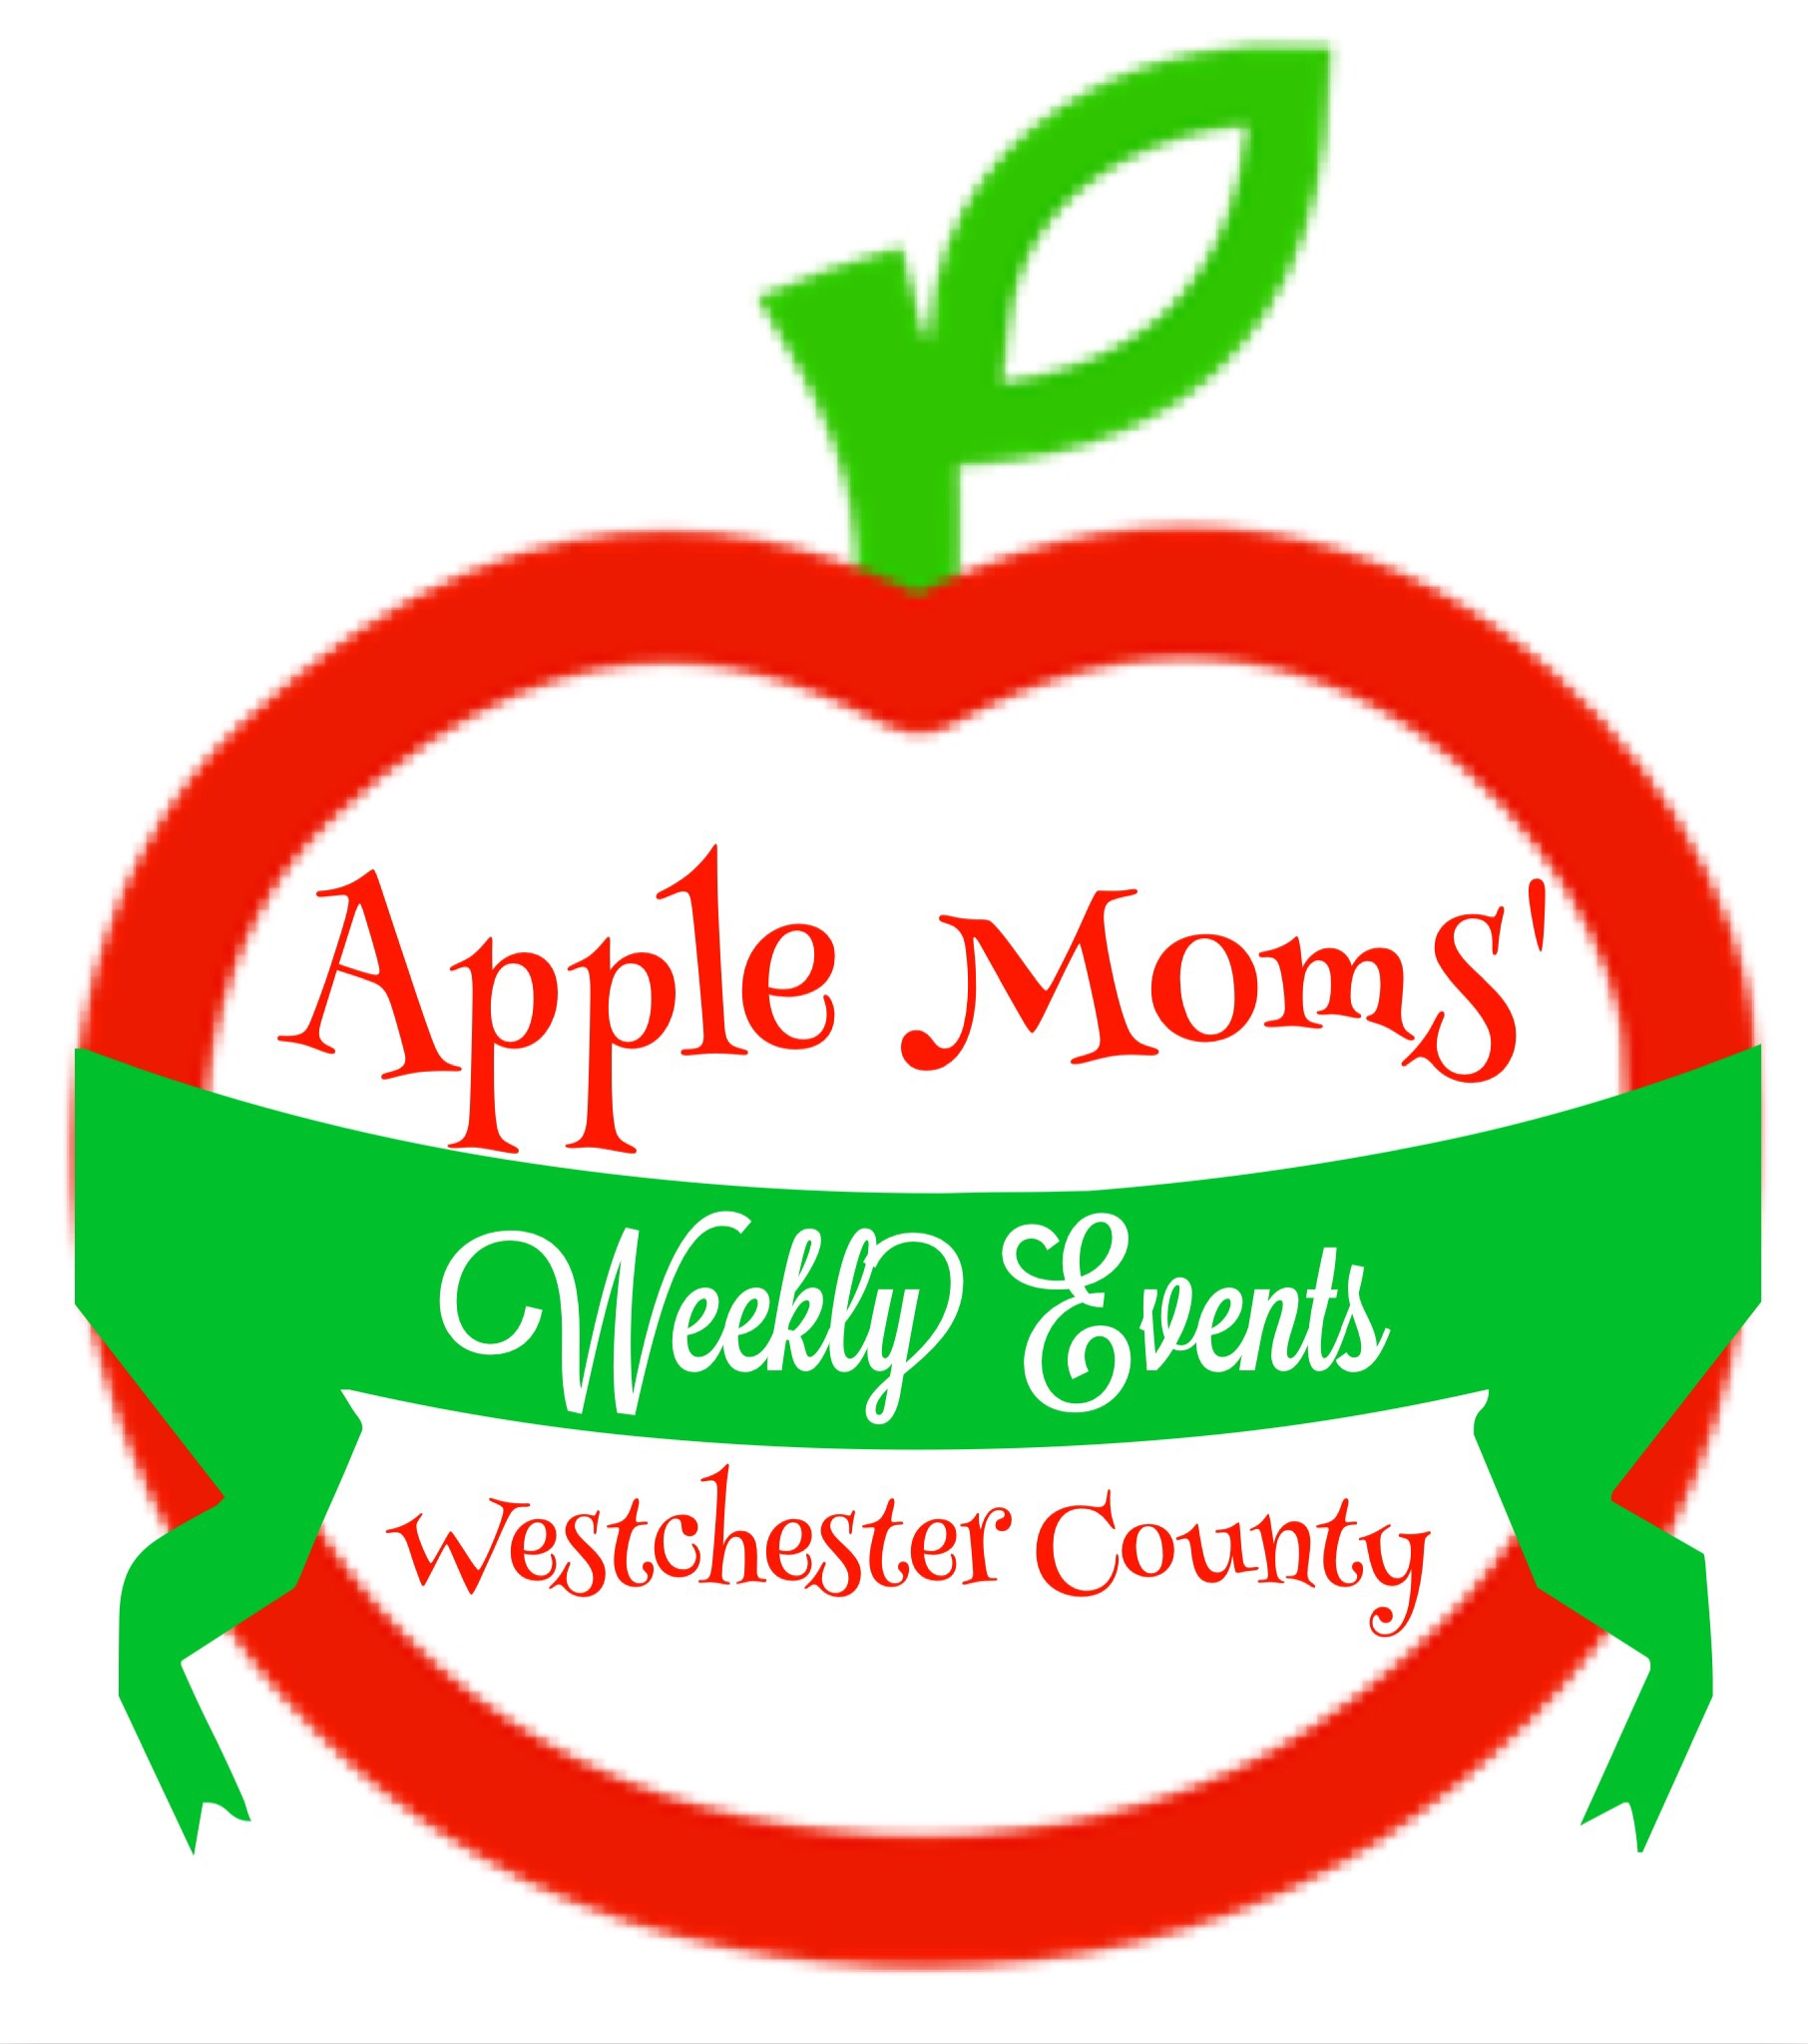 Westchester County Weekly Events 12/17-12/22